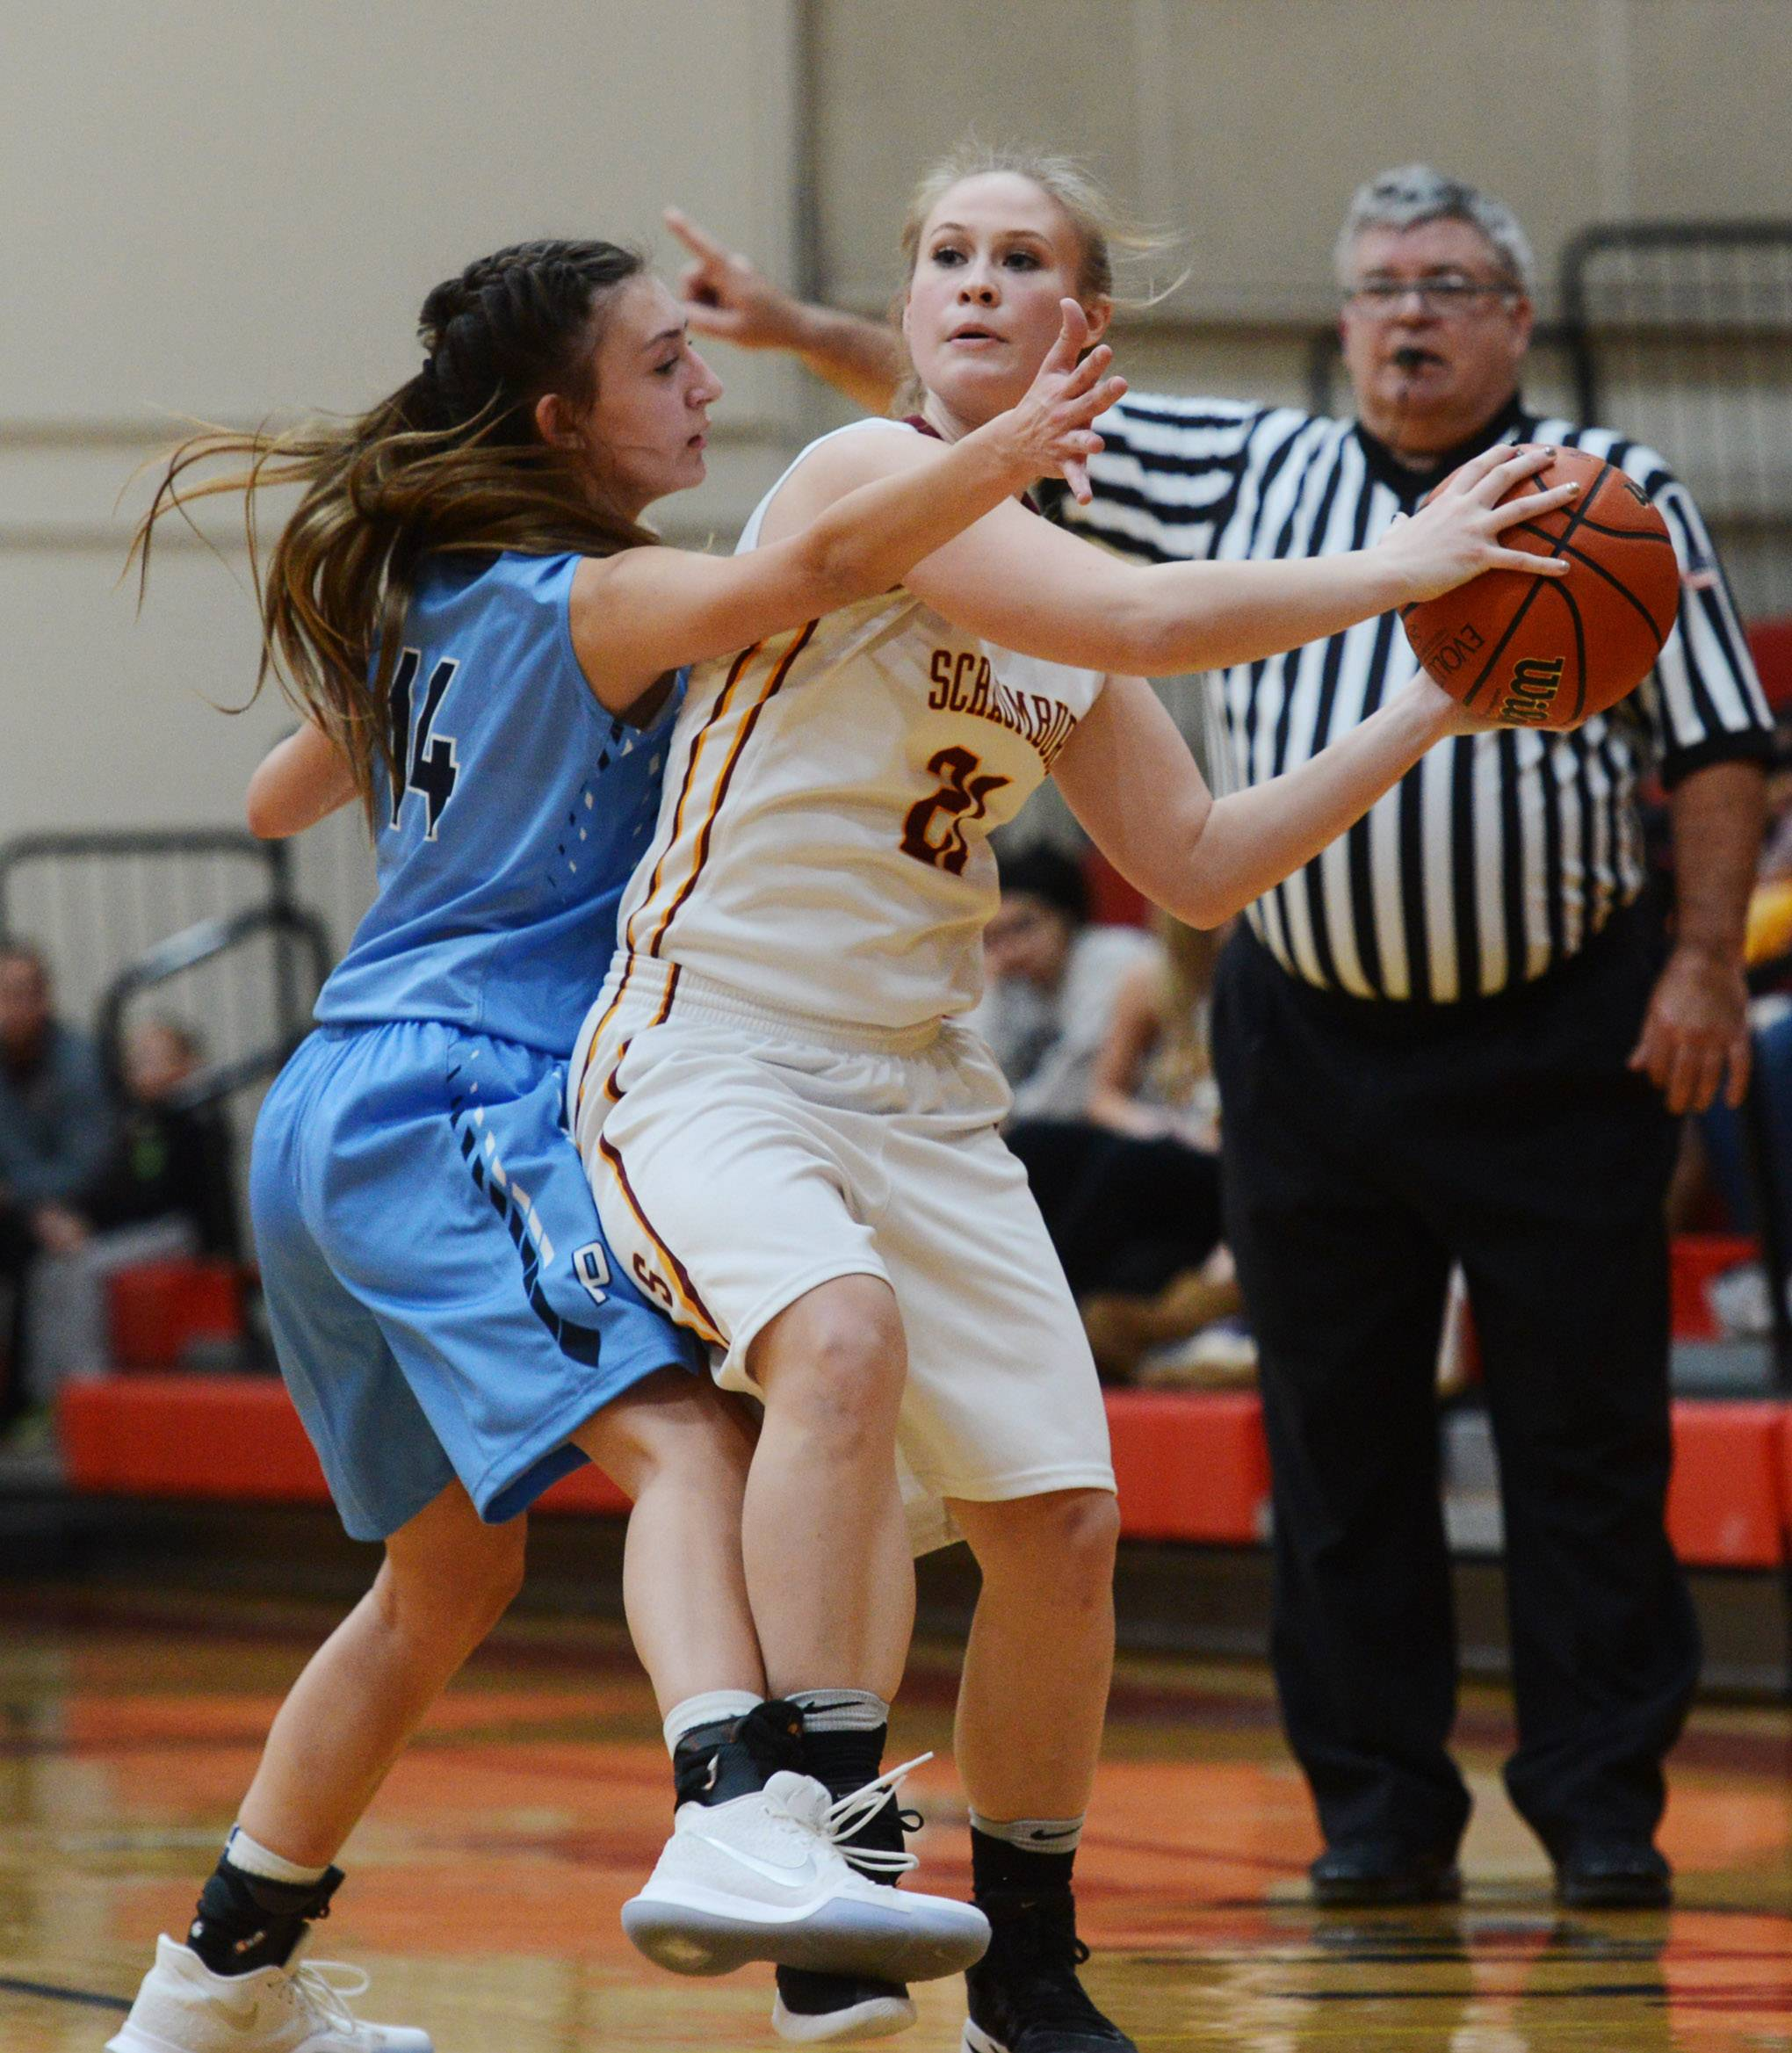 Prospect's Stephanie Kowalczyk, left, pressures Schaumburg's Meghan Luecht during Tuesday's game at Schaumburg.